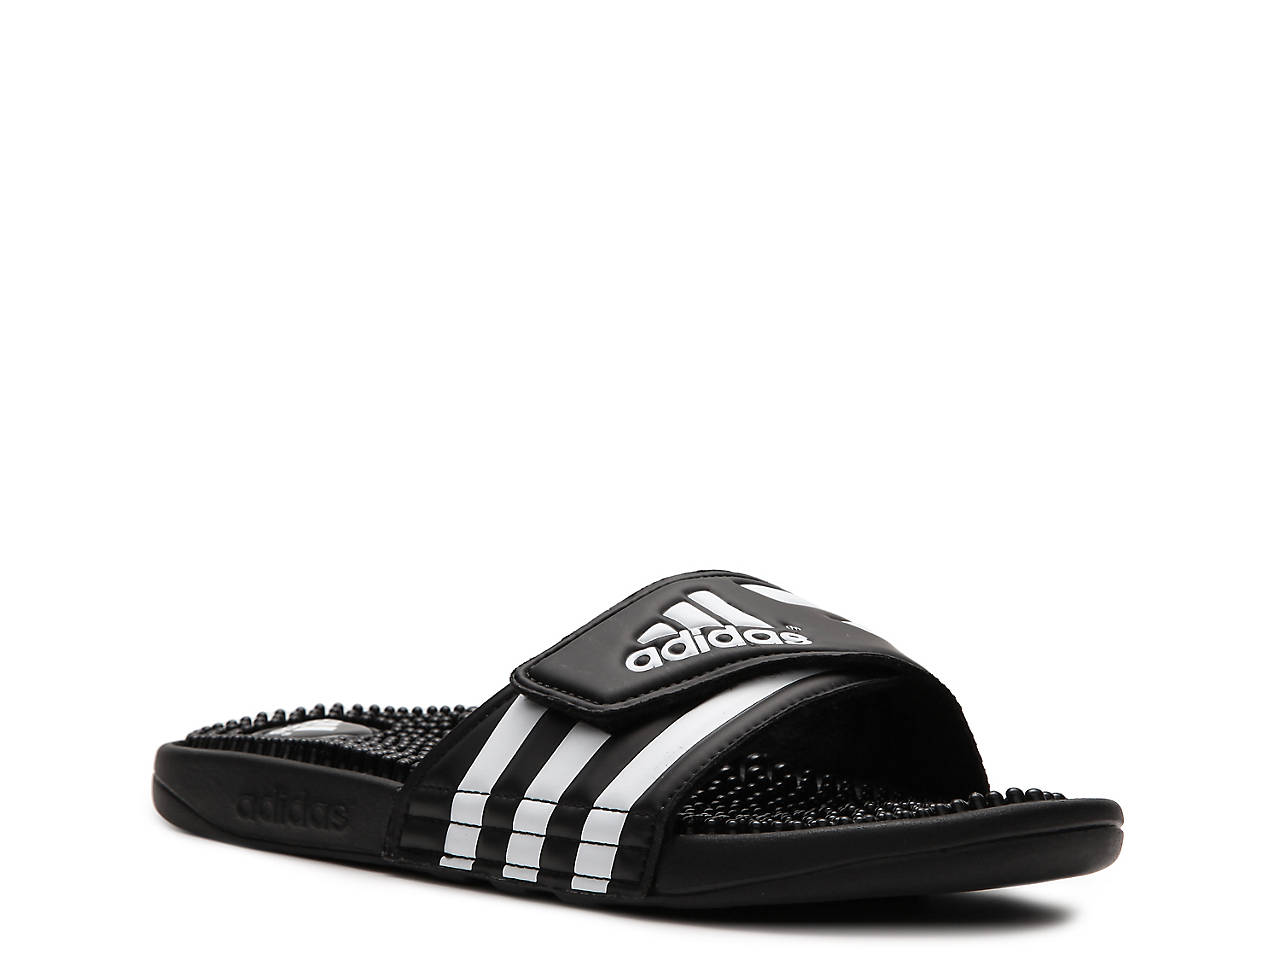 a2a36e33c adidas Adissage Slide Sandal - Women s Women s Shoes